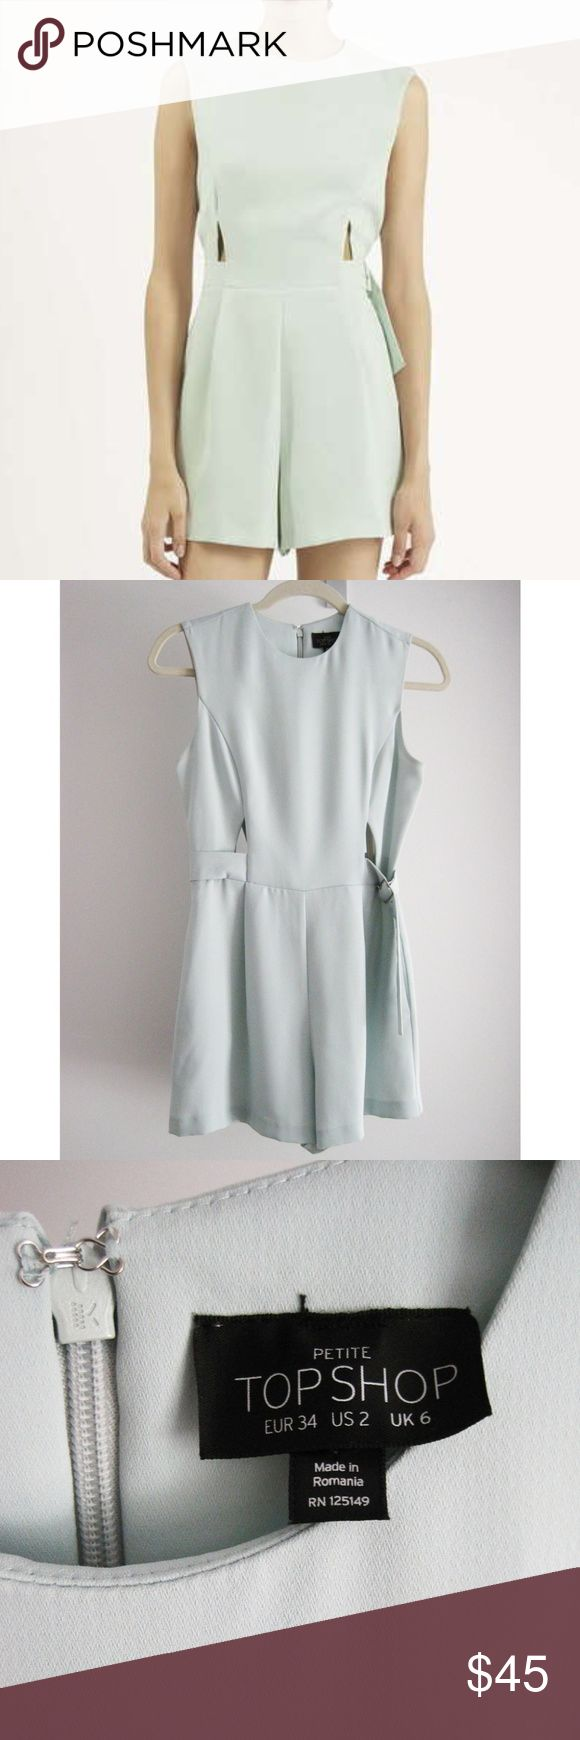 "Topshop Petite Mint Cut-Out Romper Sz 2P A mint colored playsuit featuring front & back waist cutouts, side pockets, a left side belt, and center back zip and hook & eye closure. Pockets are lined. Excellent condition-worn and washed 1x on delicate cycle and hang dried, just like new! Smoke/pet-free home. All images are my own except for the 1st photo. Credited to Topshop online image. Measurements: Bust: 32 1/2""  Waist: 26 ¼"" Outseam: 13 ¼"" Inseam: 2 ¾"" Front Rise: 12 5/8"" Topshop Pants…"